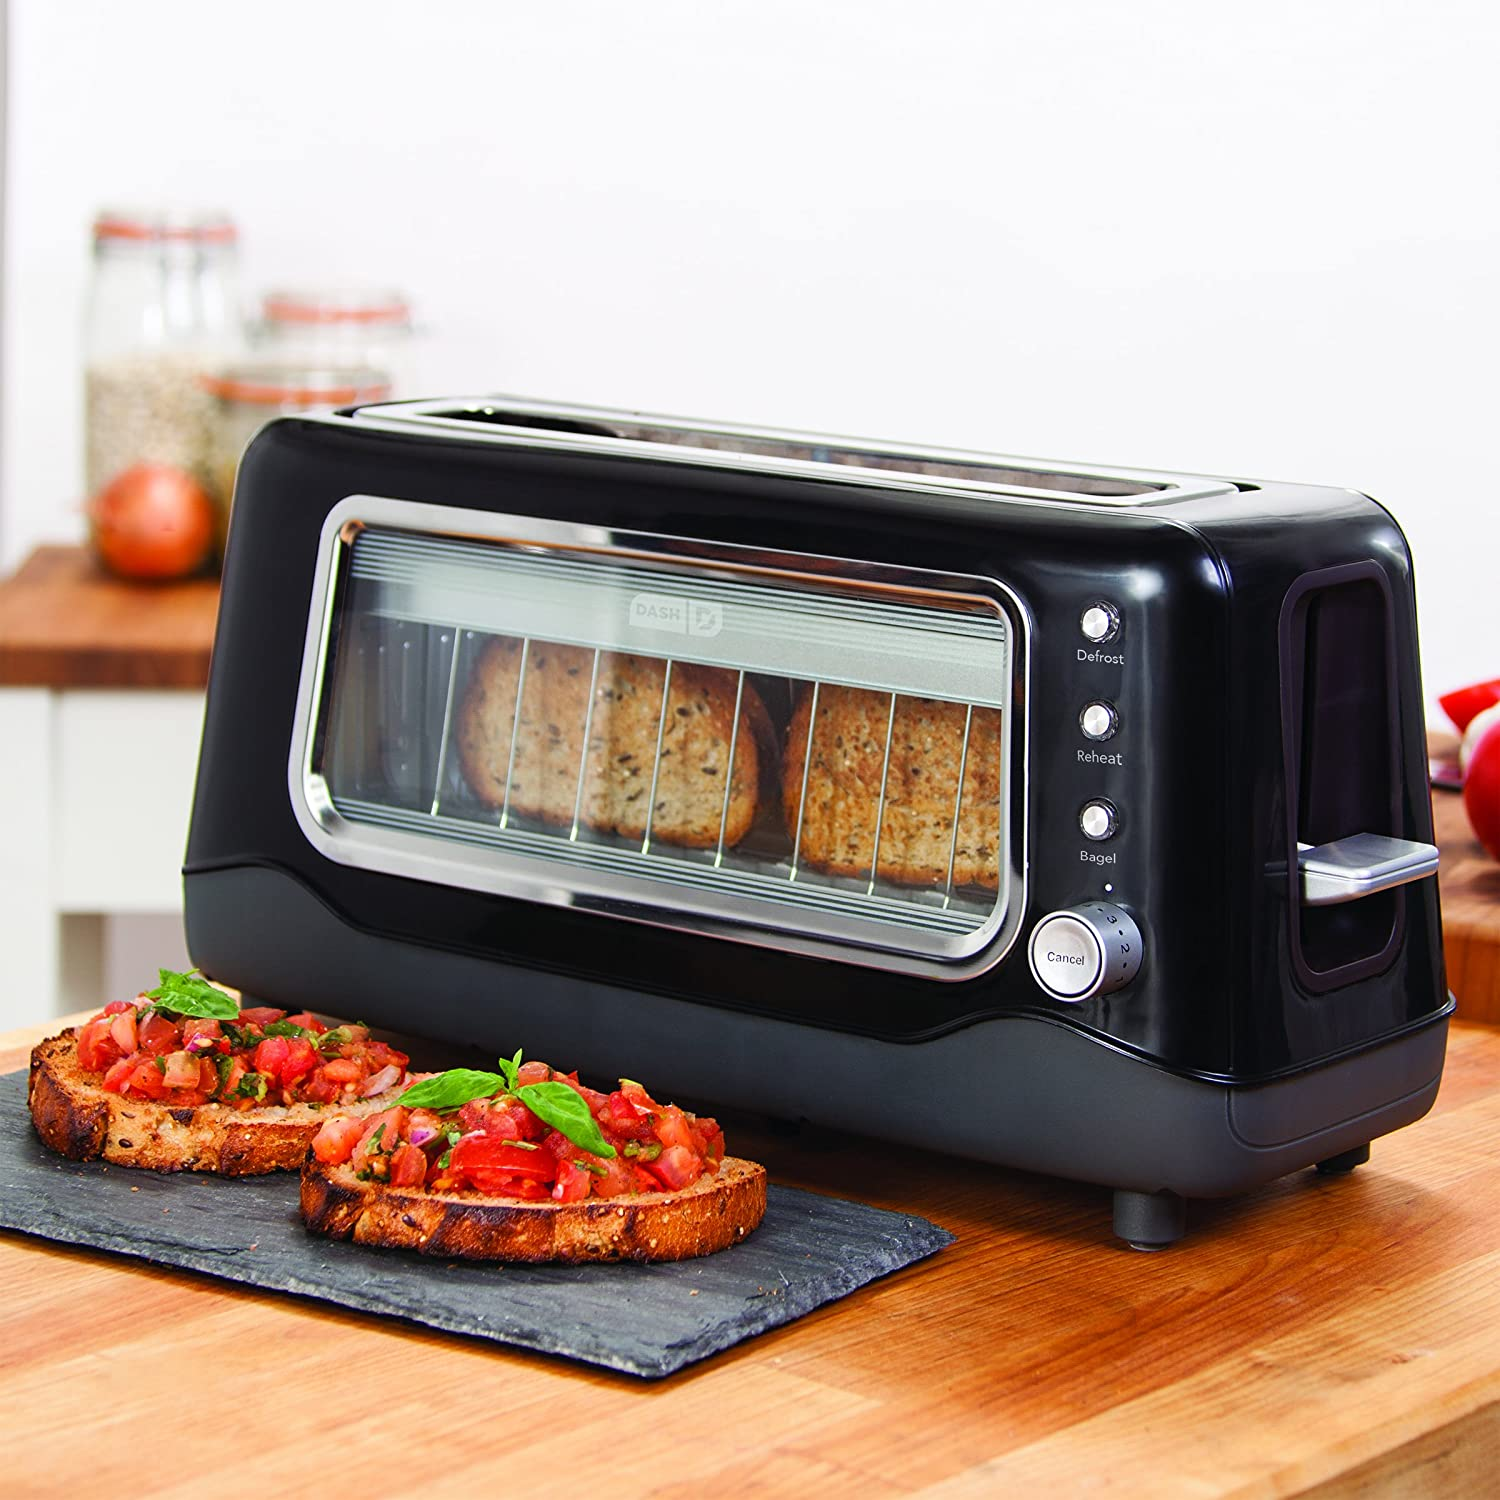 Amazon.com: Dash Clear View Toaster: Kitchen \u0026 Dining